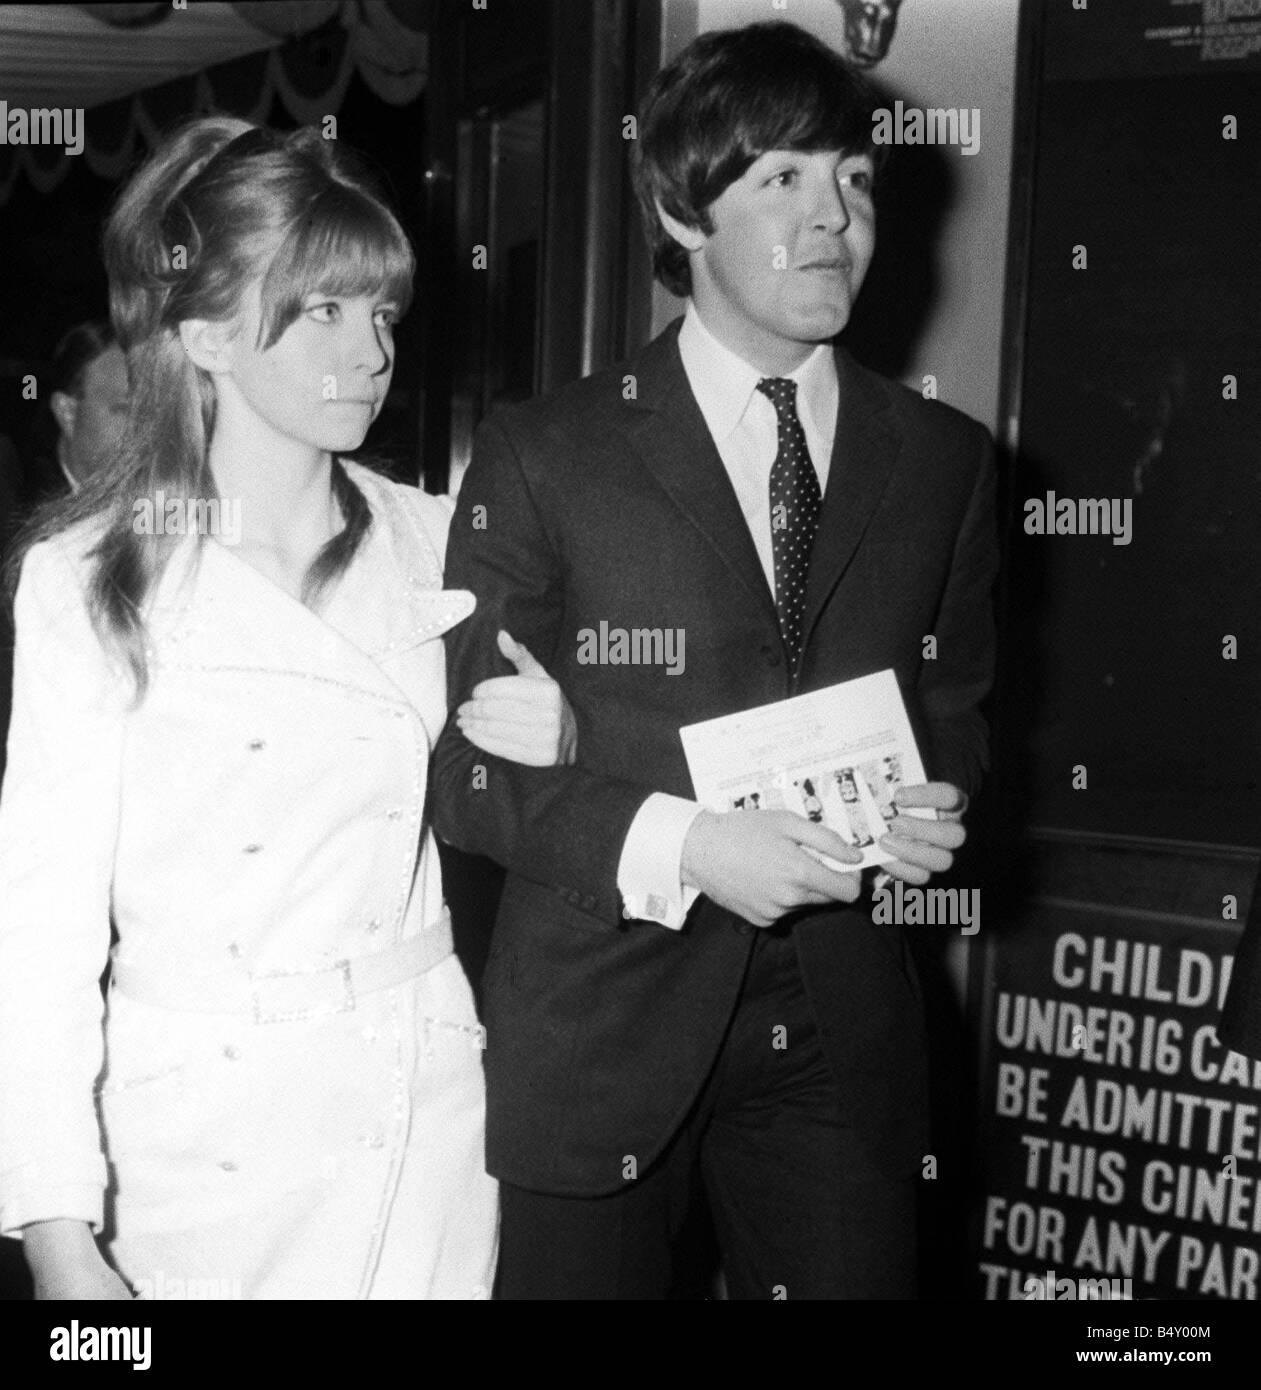 Paul McCartney March 1966 With Jane Asher